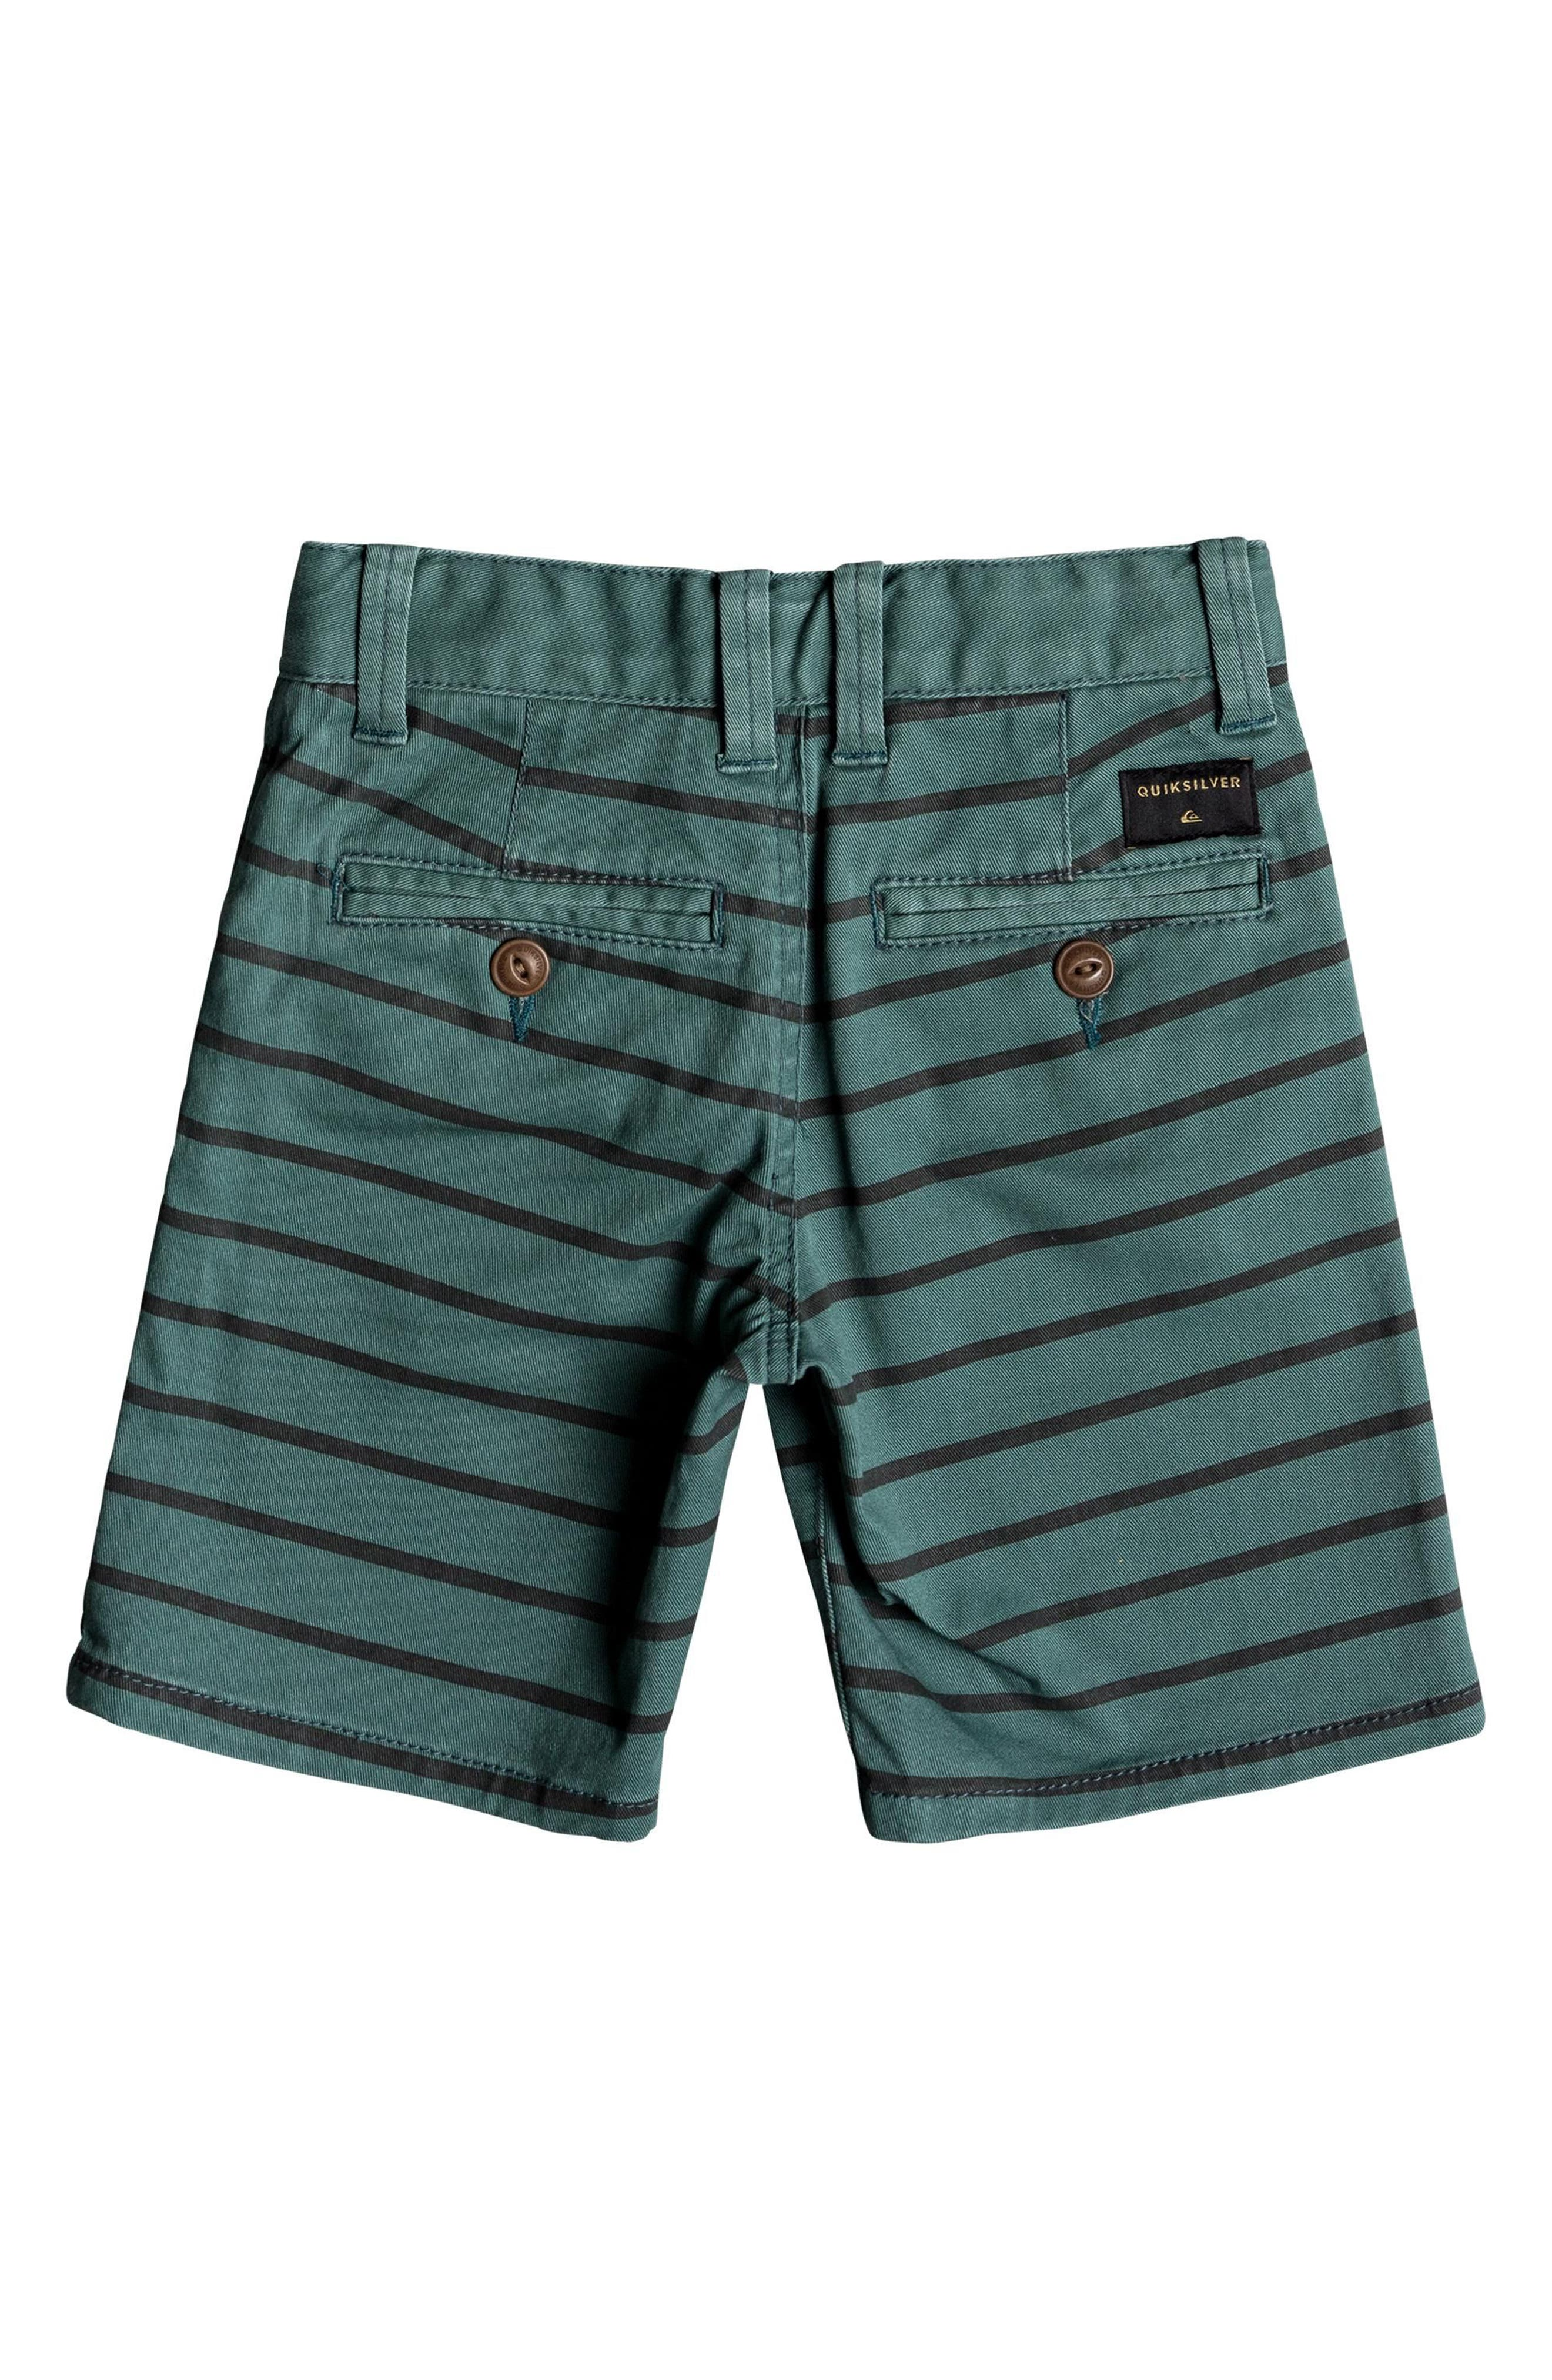 Waiku Stripe Shorts,                             Alternate thumbnail 2, color,                             Mallard Green